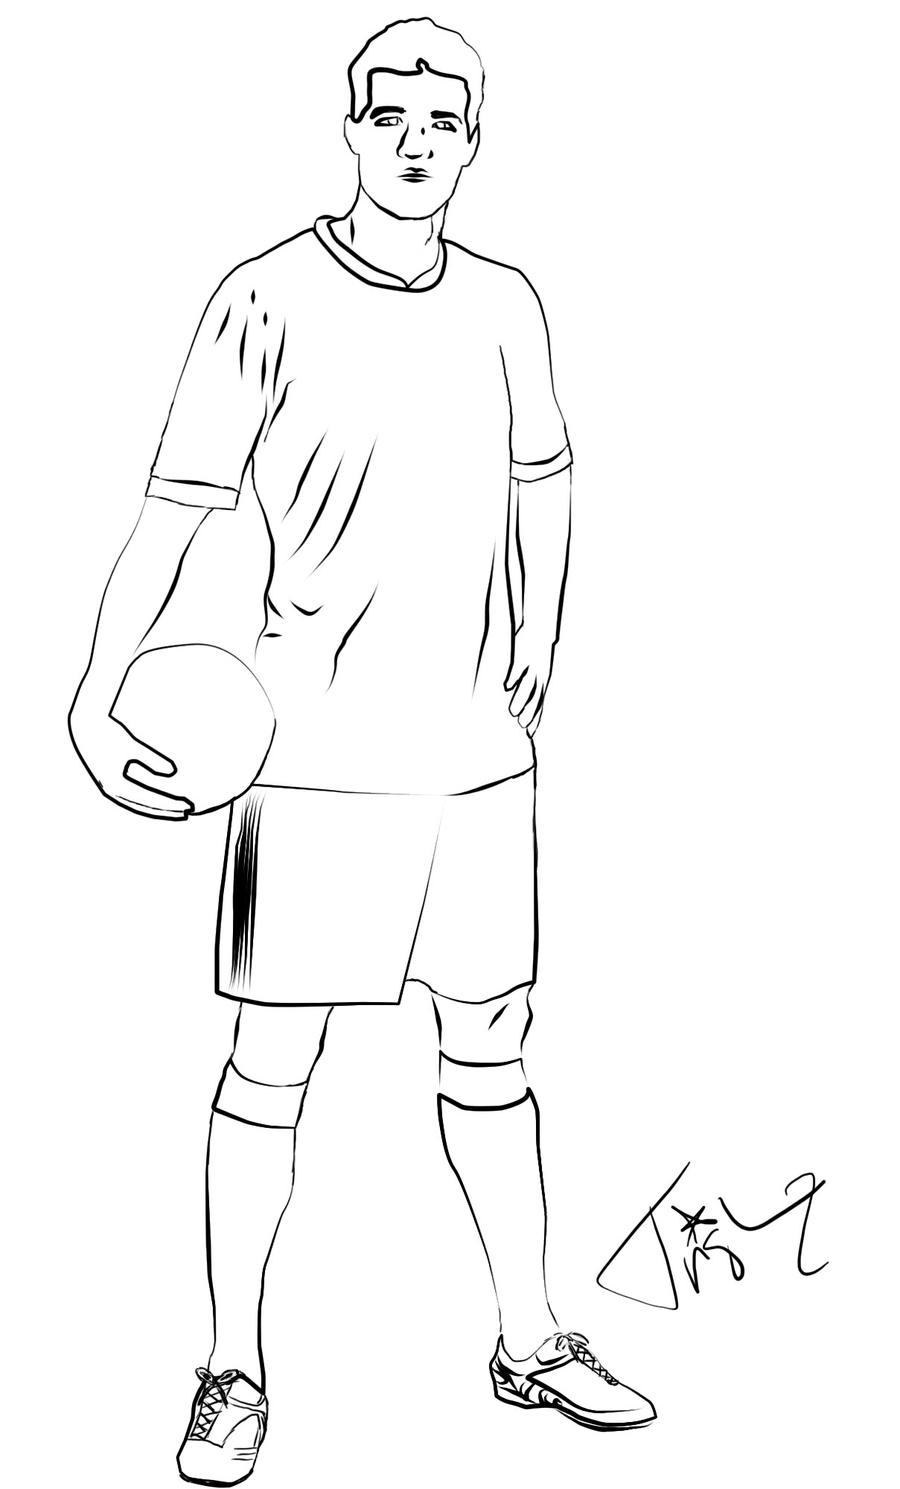 how to draw a football player easy free football player drawing download free clip art free player to easy a football draw how